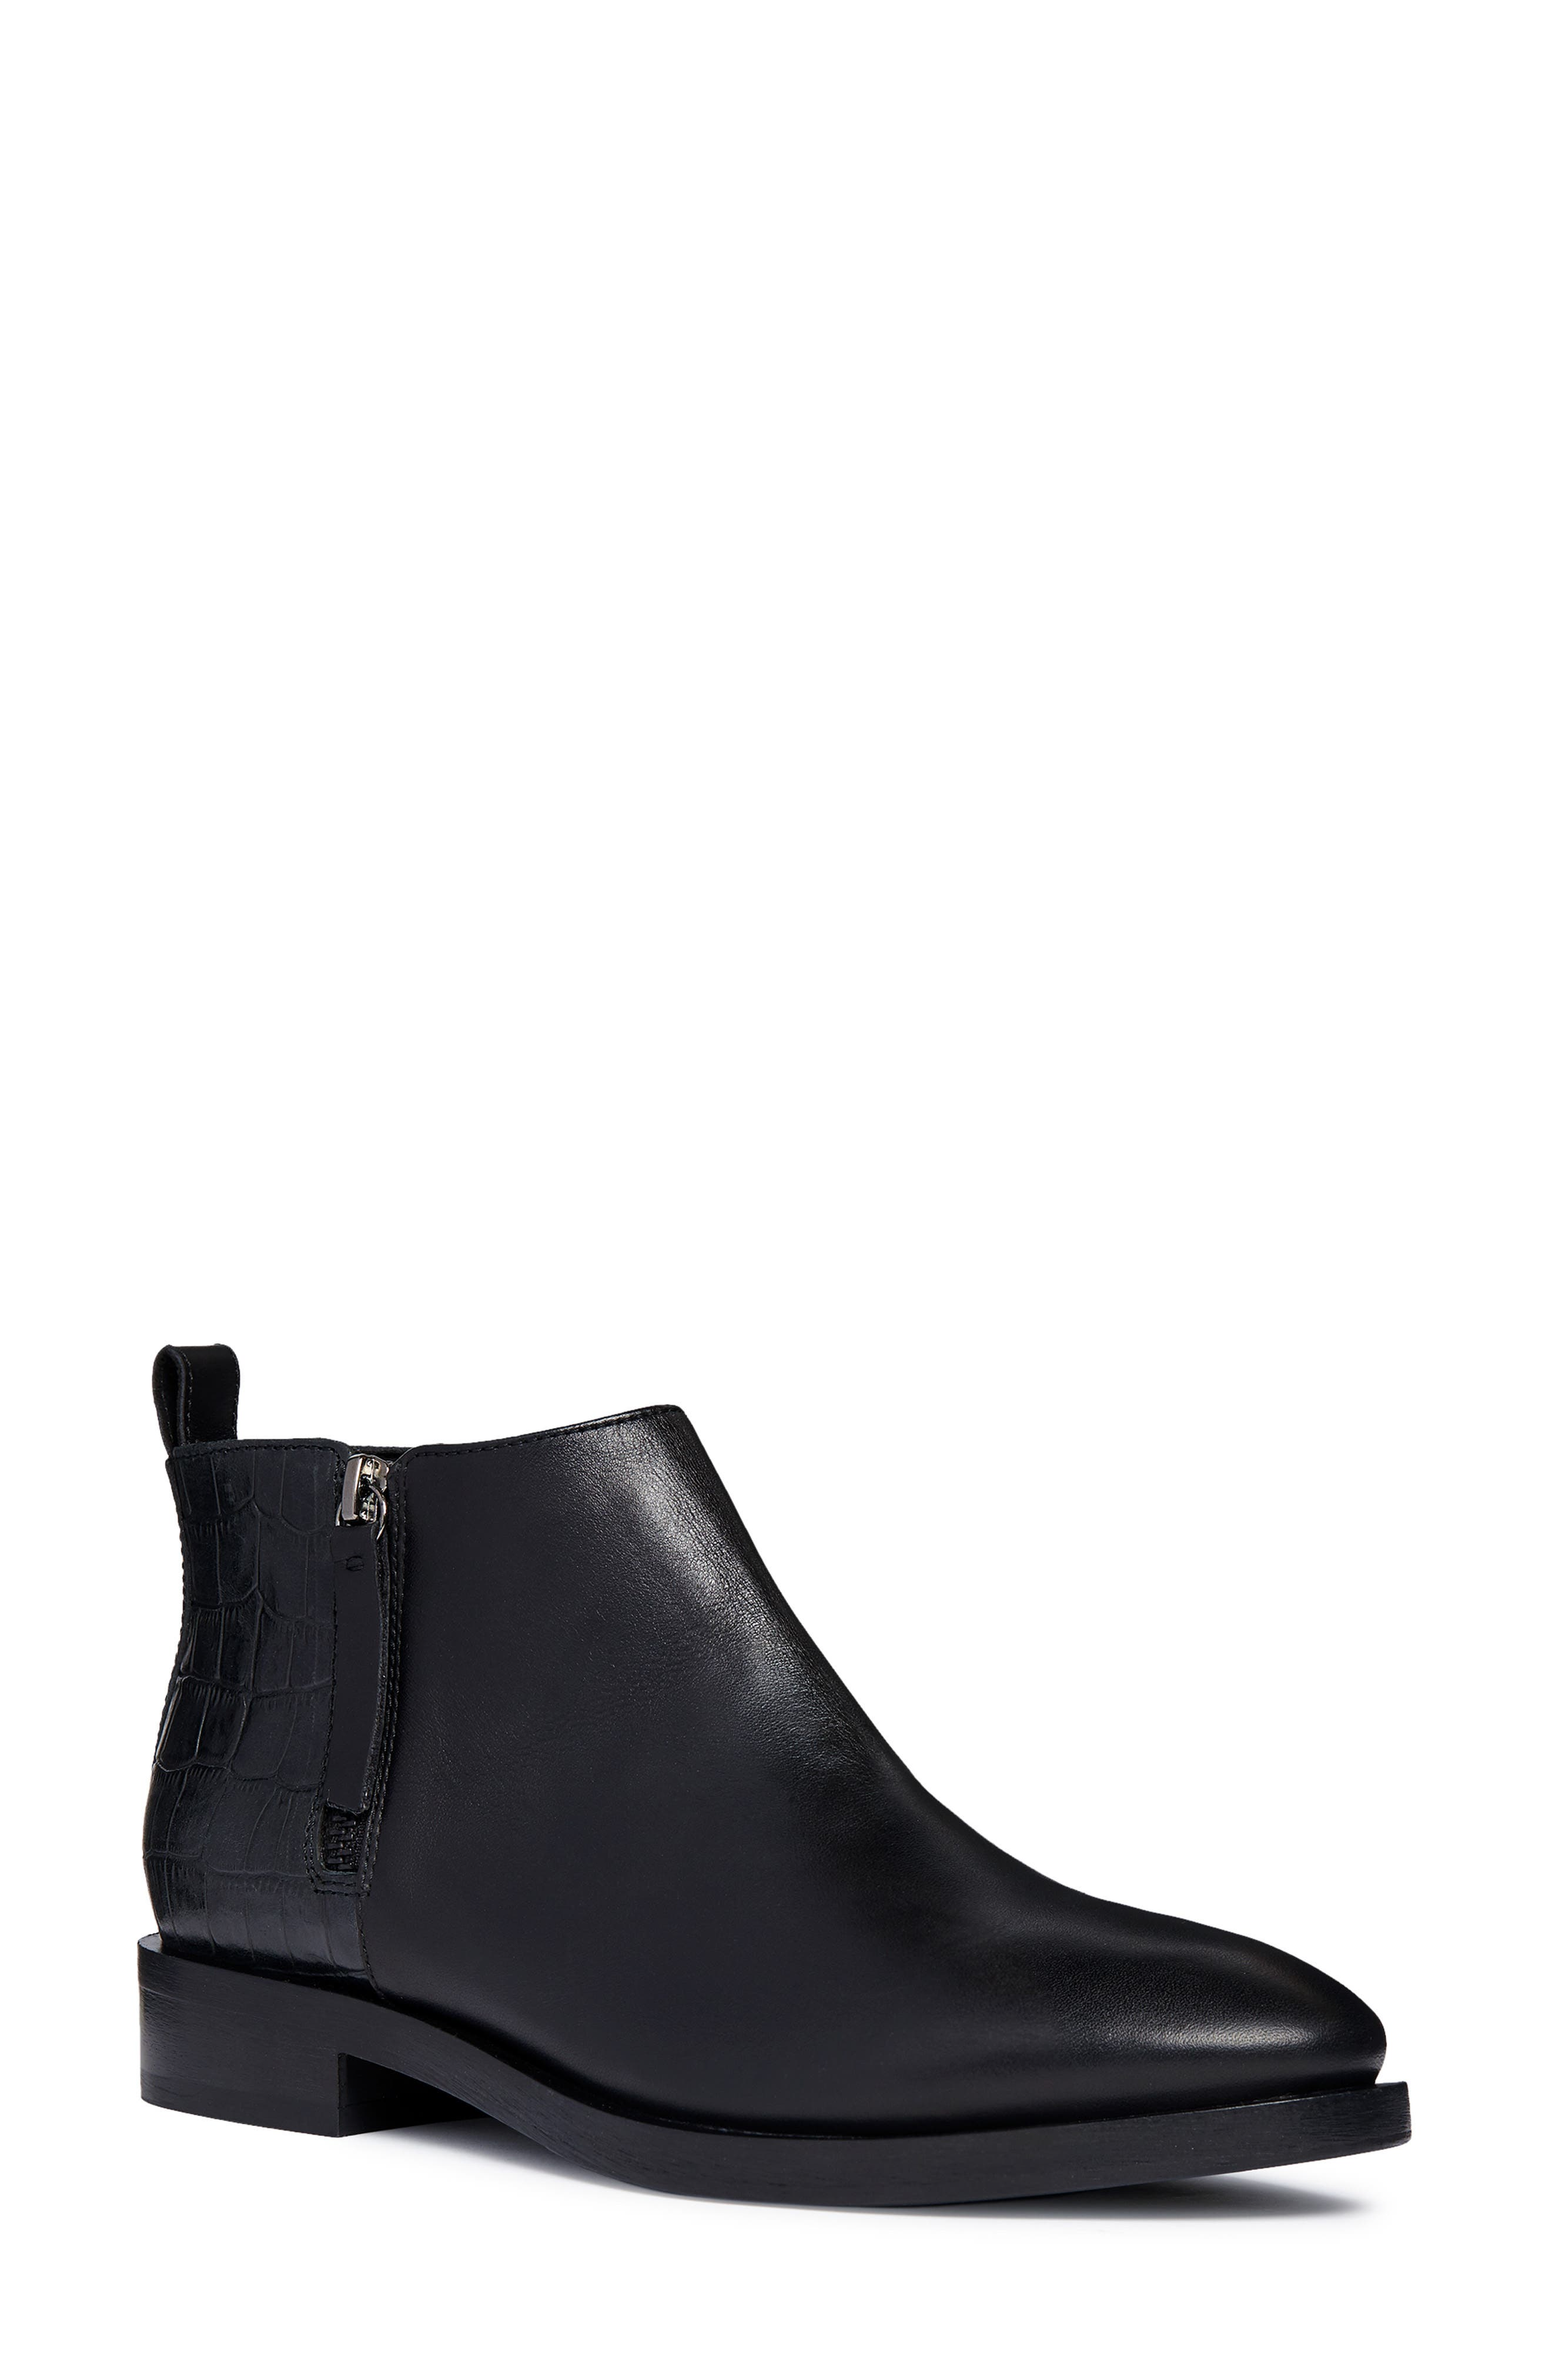 Brogue Bootie,                         Main,                         color, BLACK LEATHER